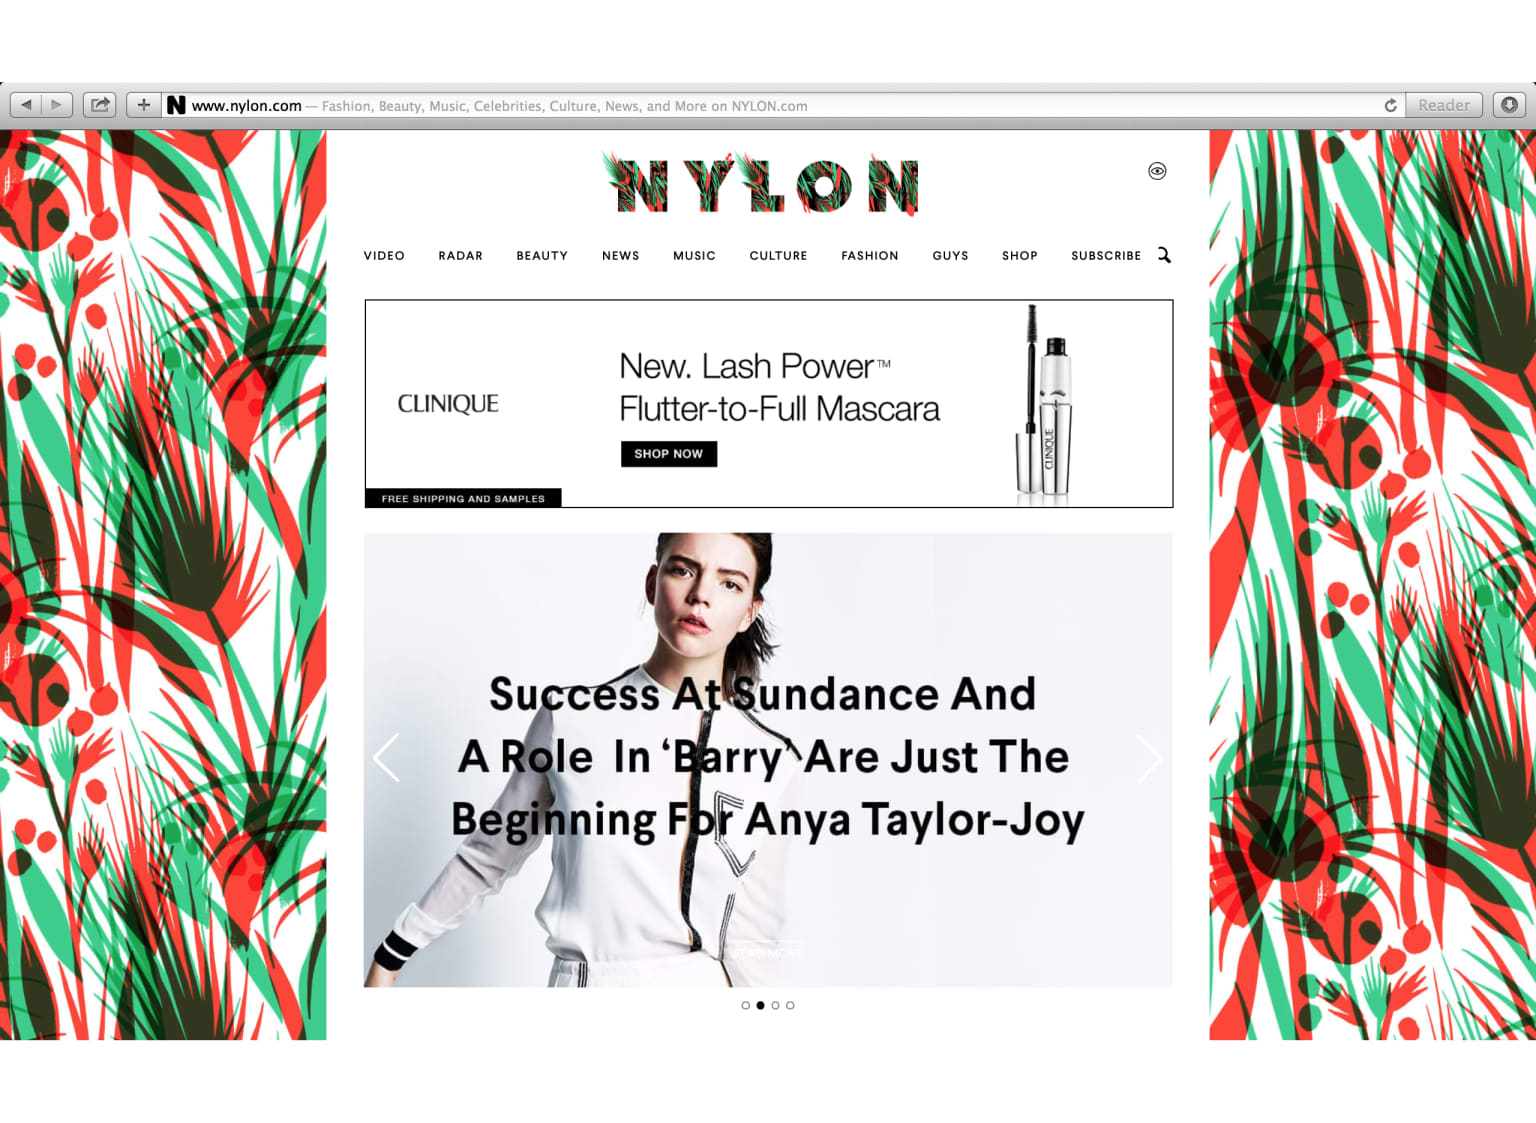 NYLON Magazine logo and pattern